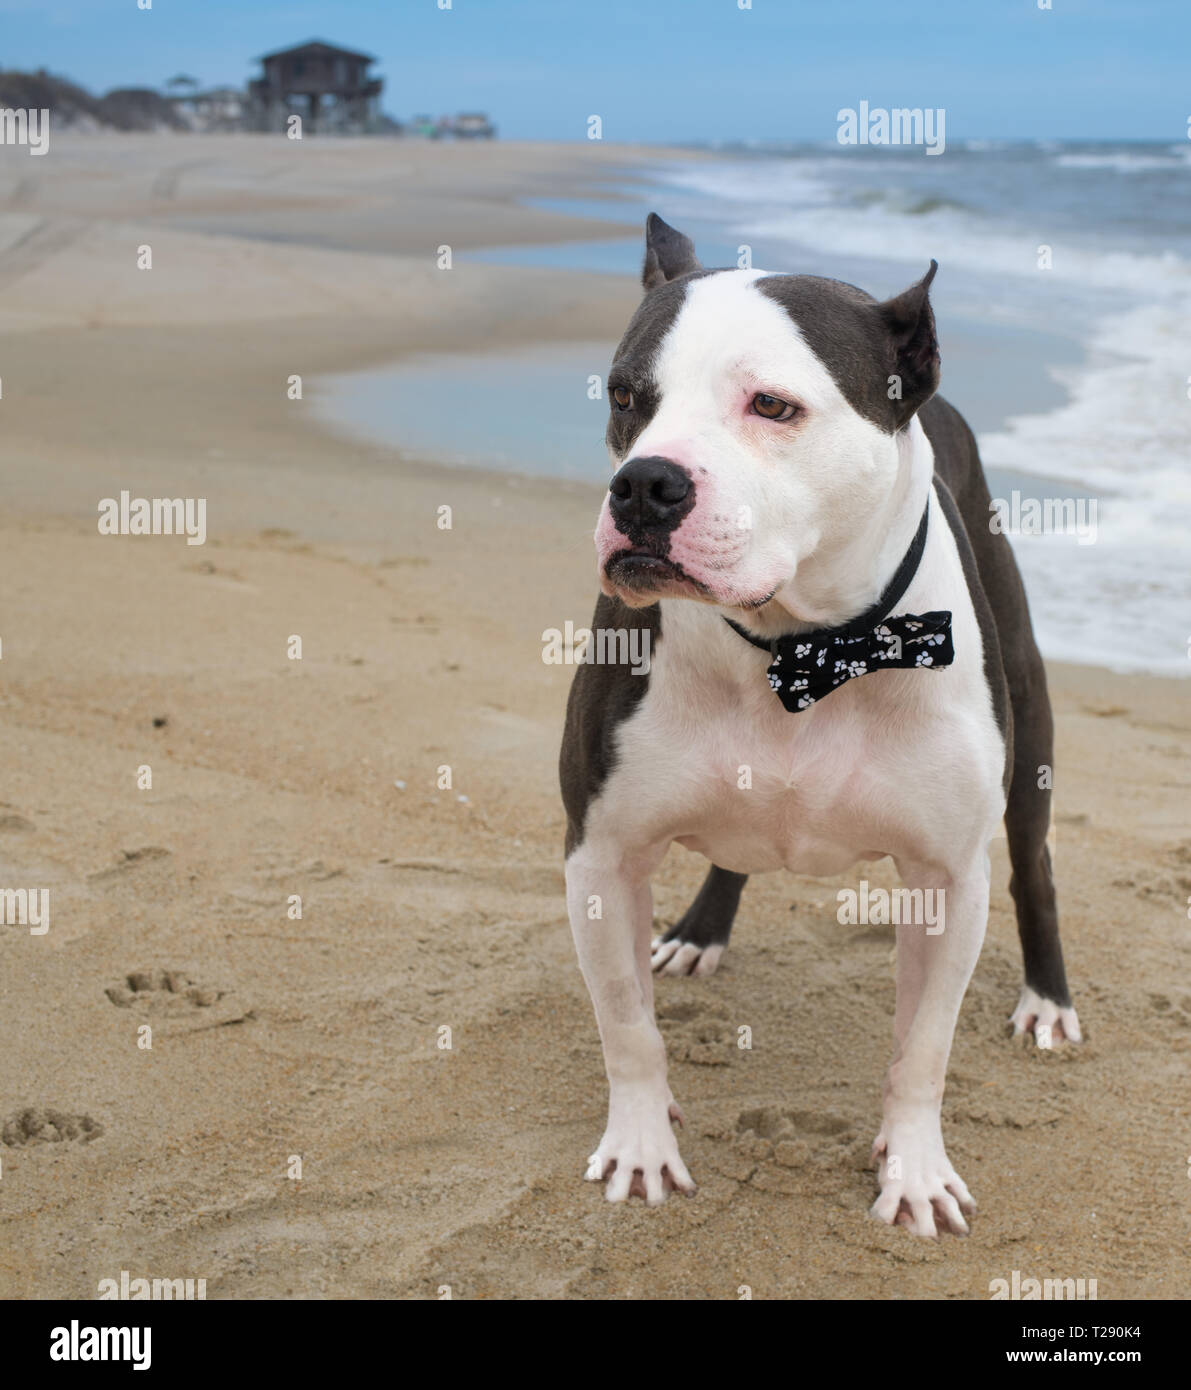 American Staffordshire Terrier wearing a bowtie on the beach - Stock Image